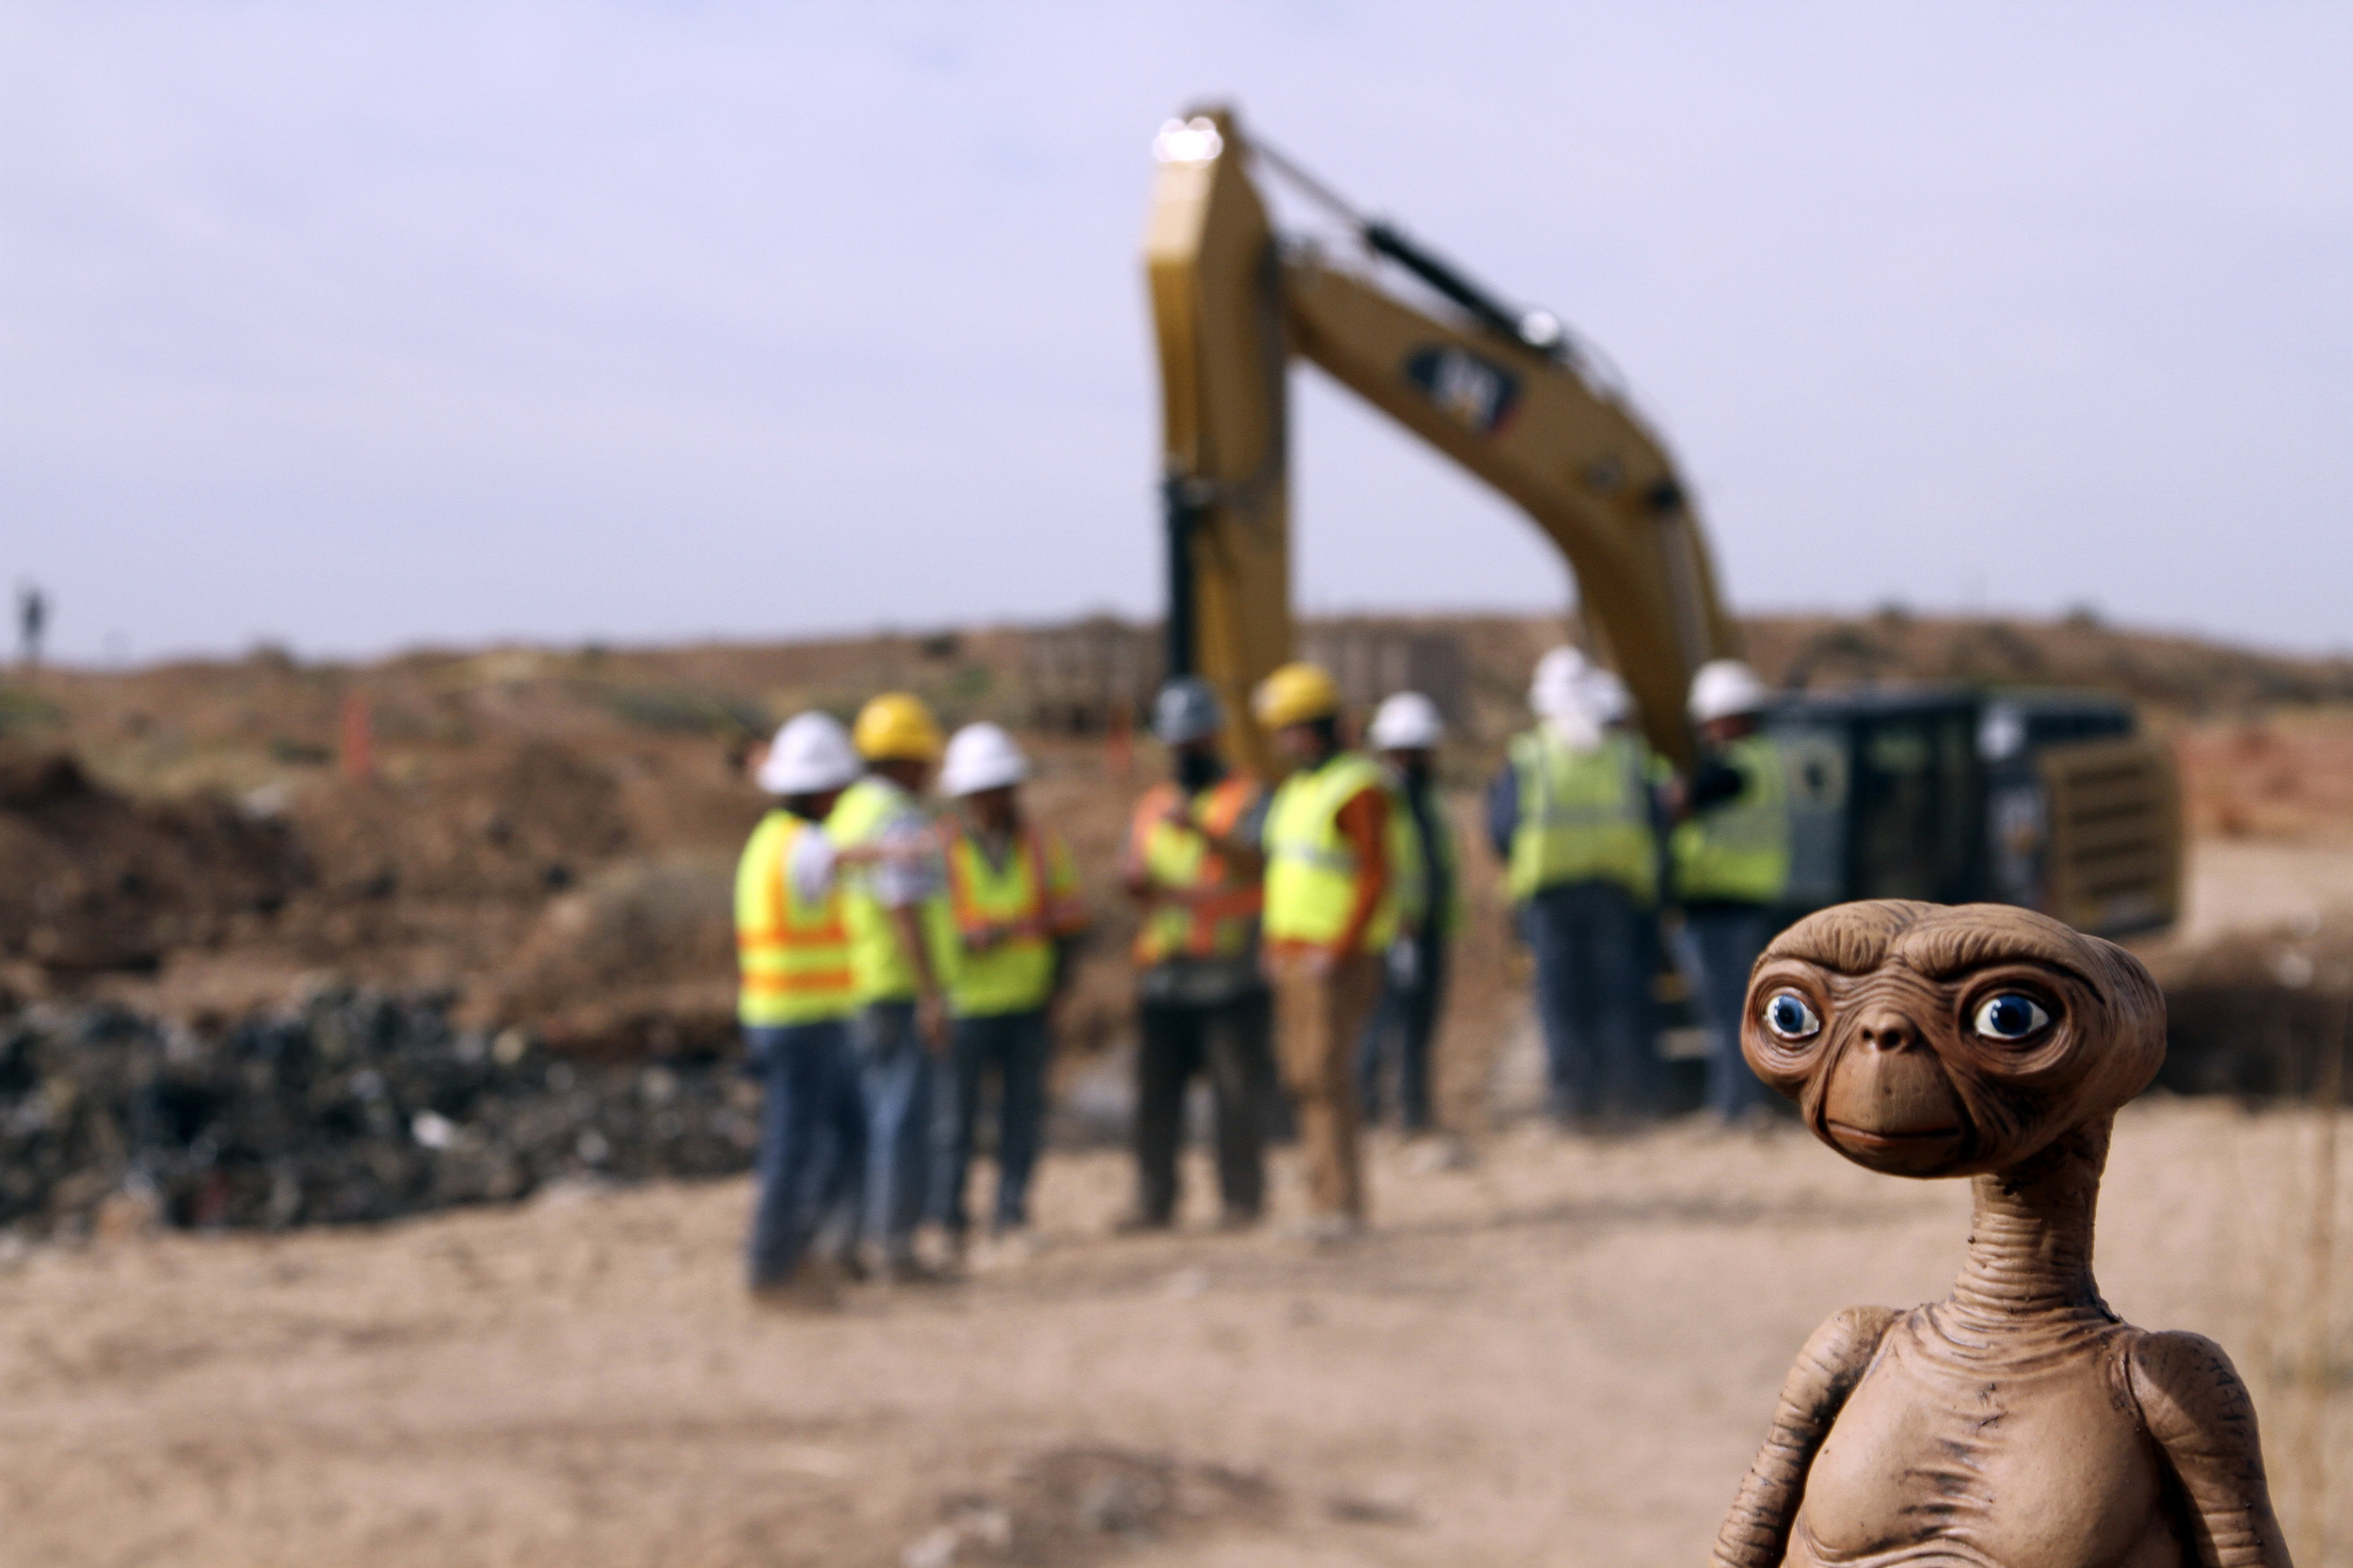 Actual E.T. Aliens Discovered in Landfill